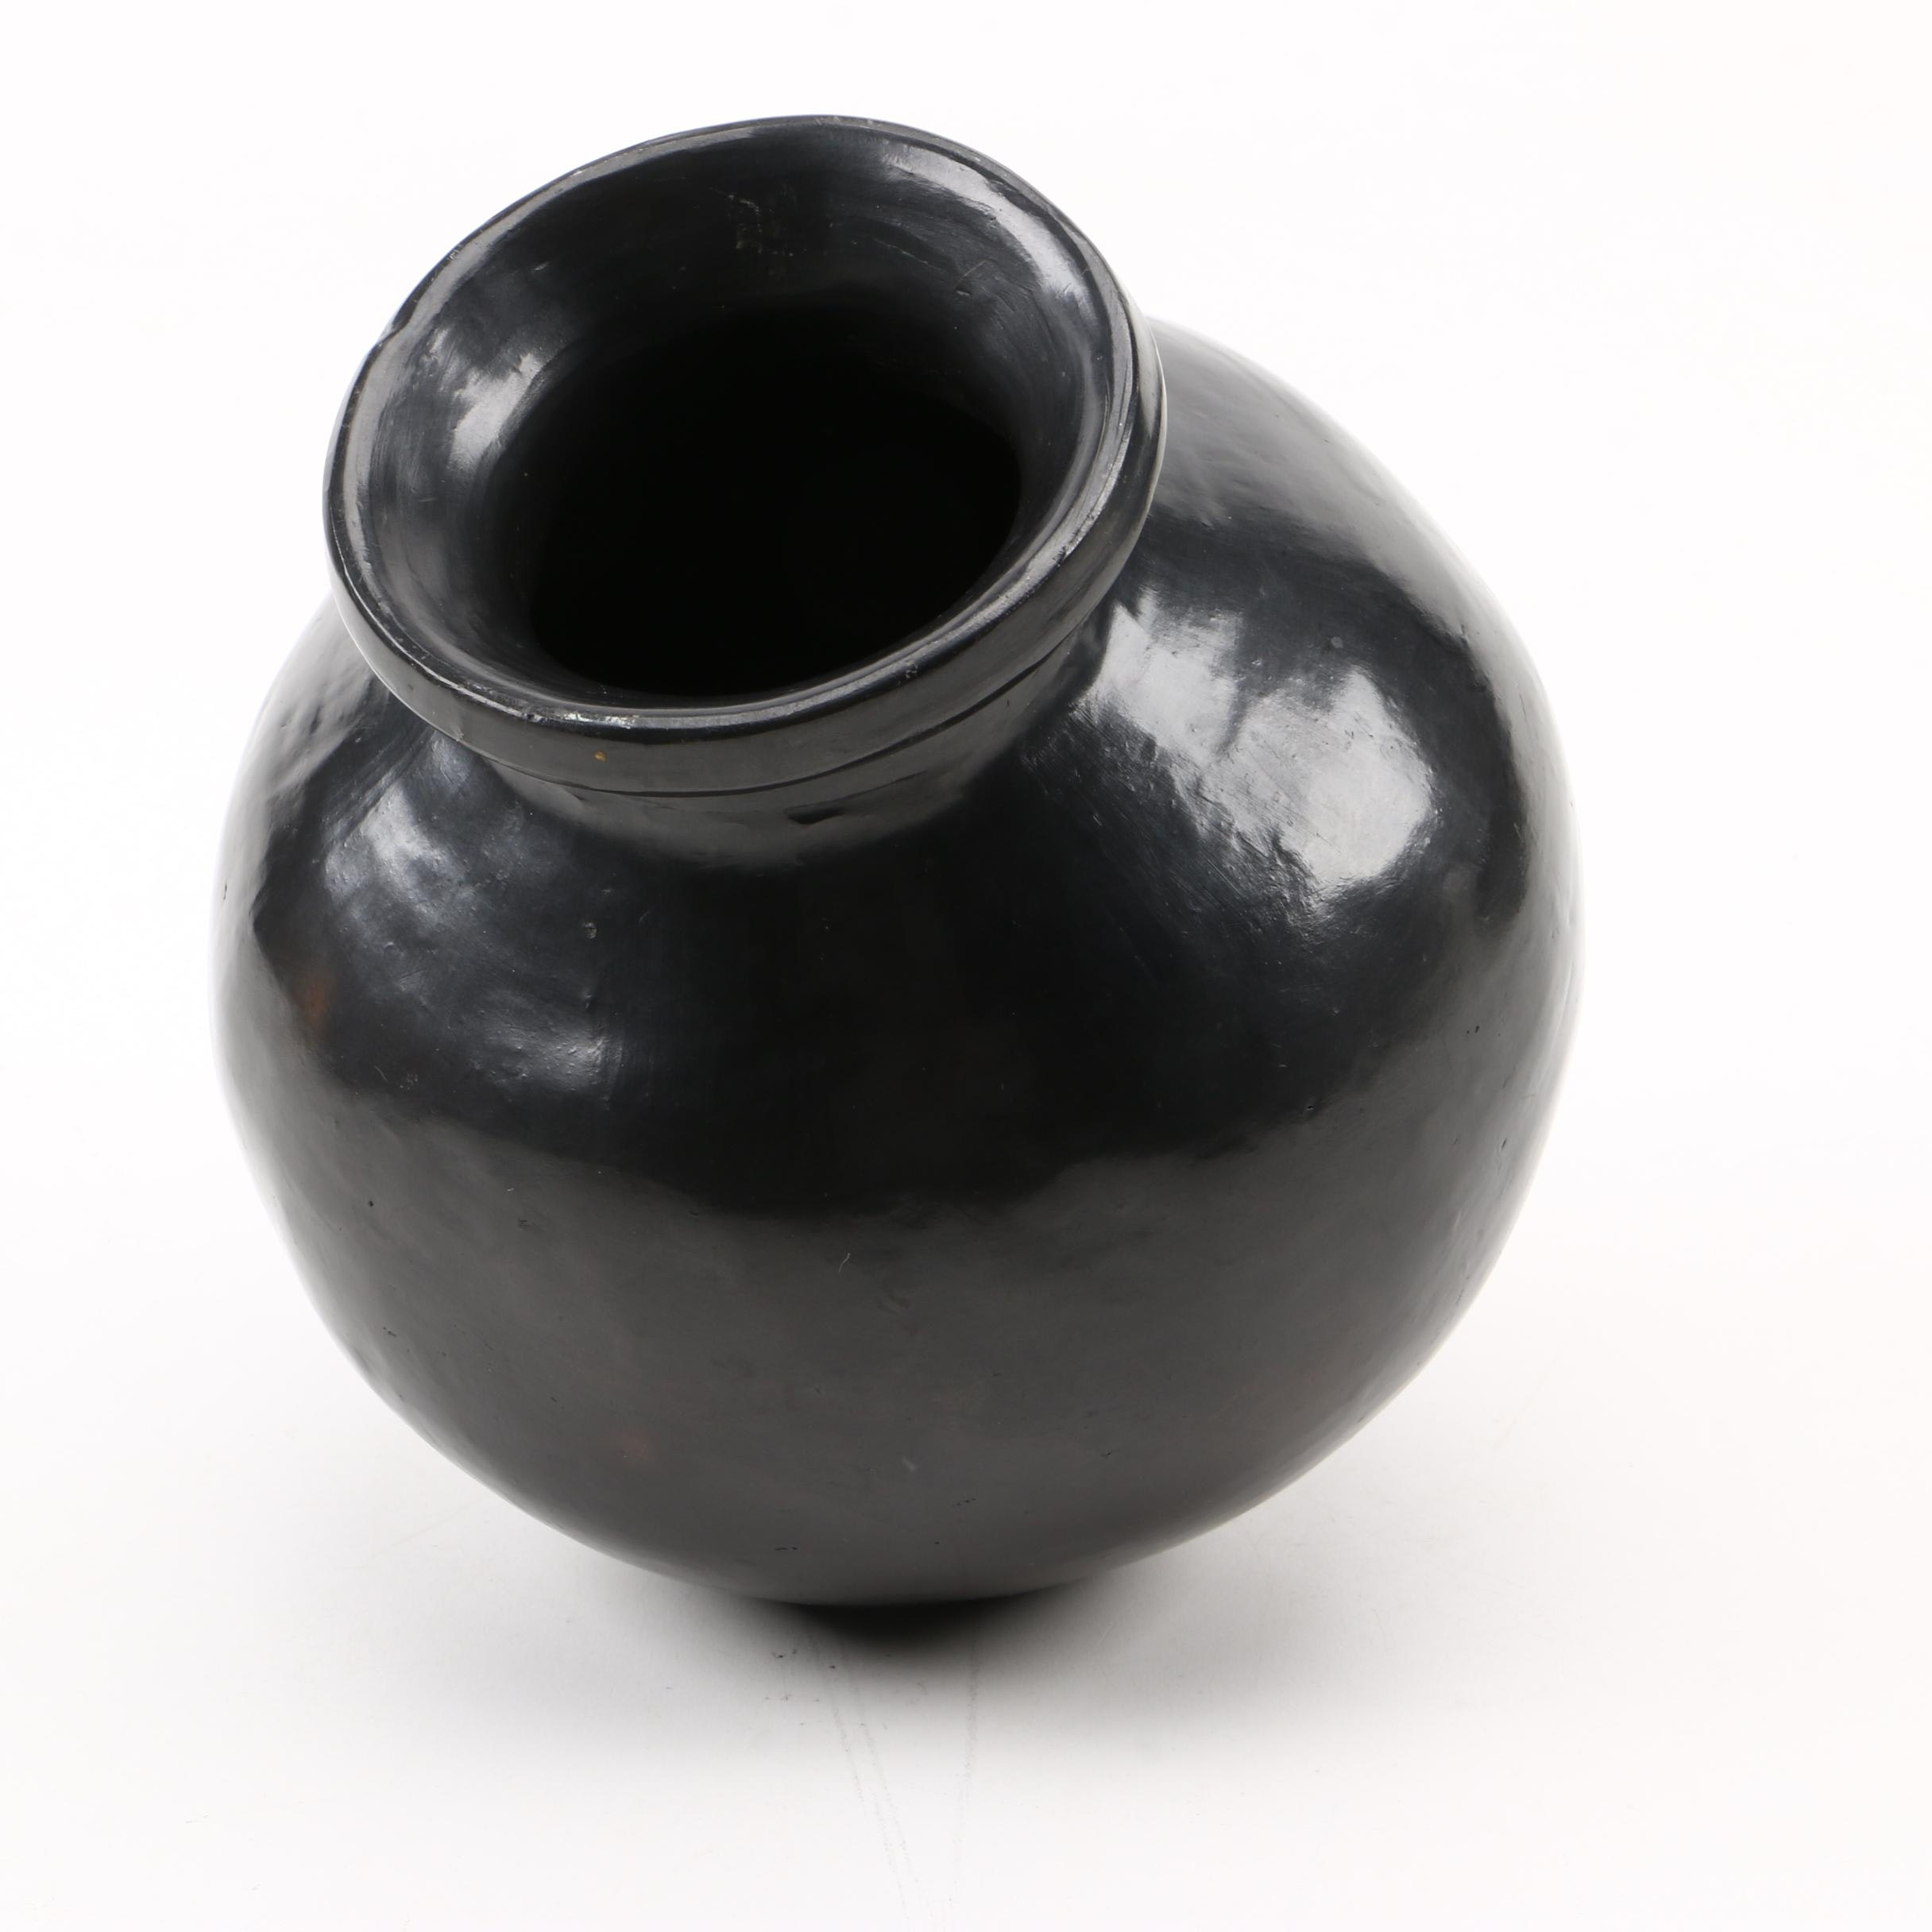 Handbuilt and Burnished Oaxaca-Style Vase